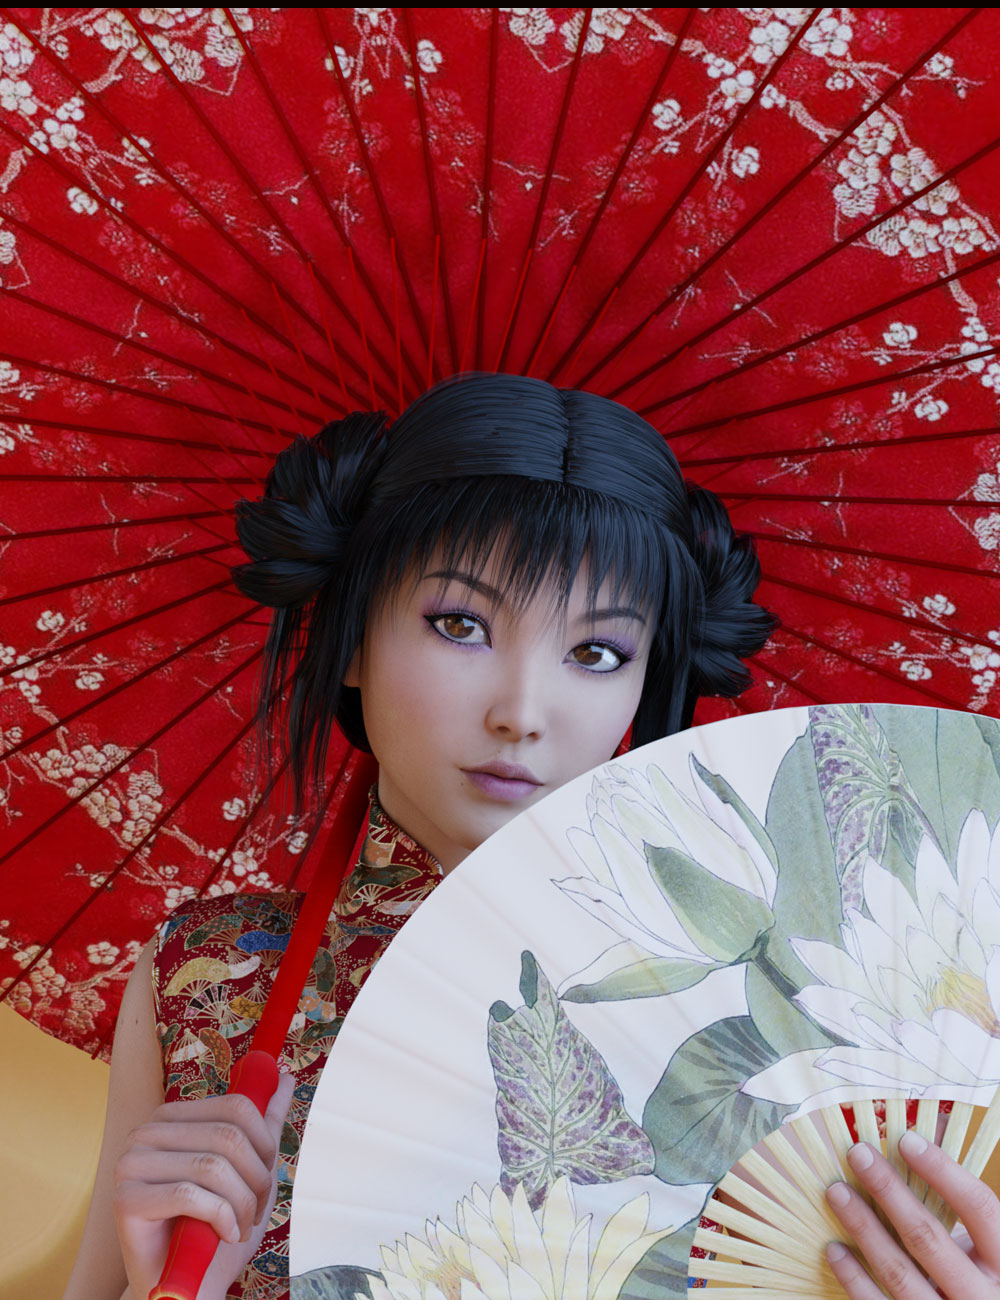 Oriental Umbrella and Fans by: Prae, 3D Models by Daz 3D